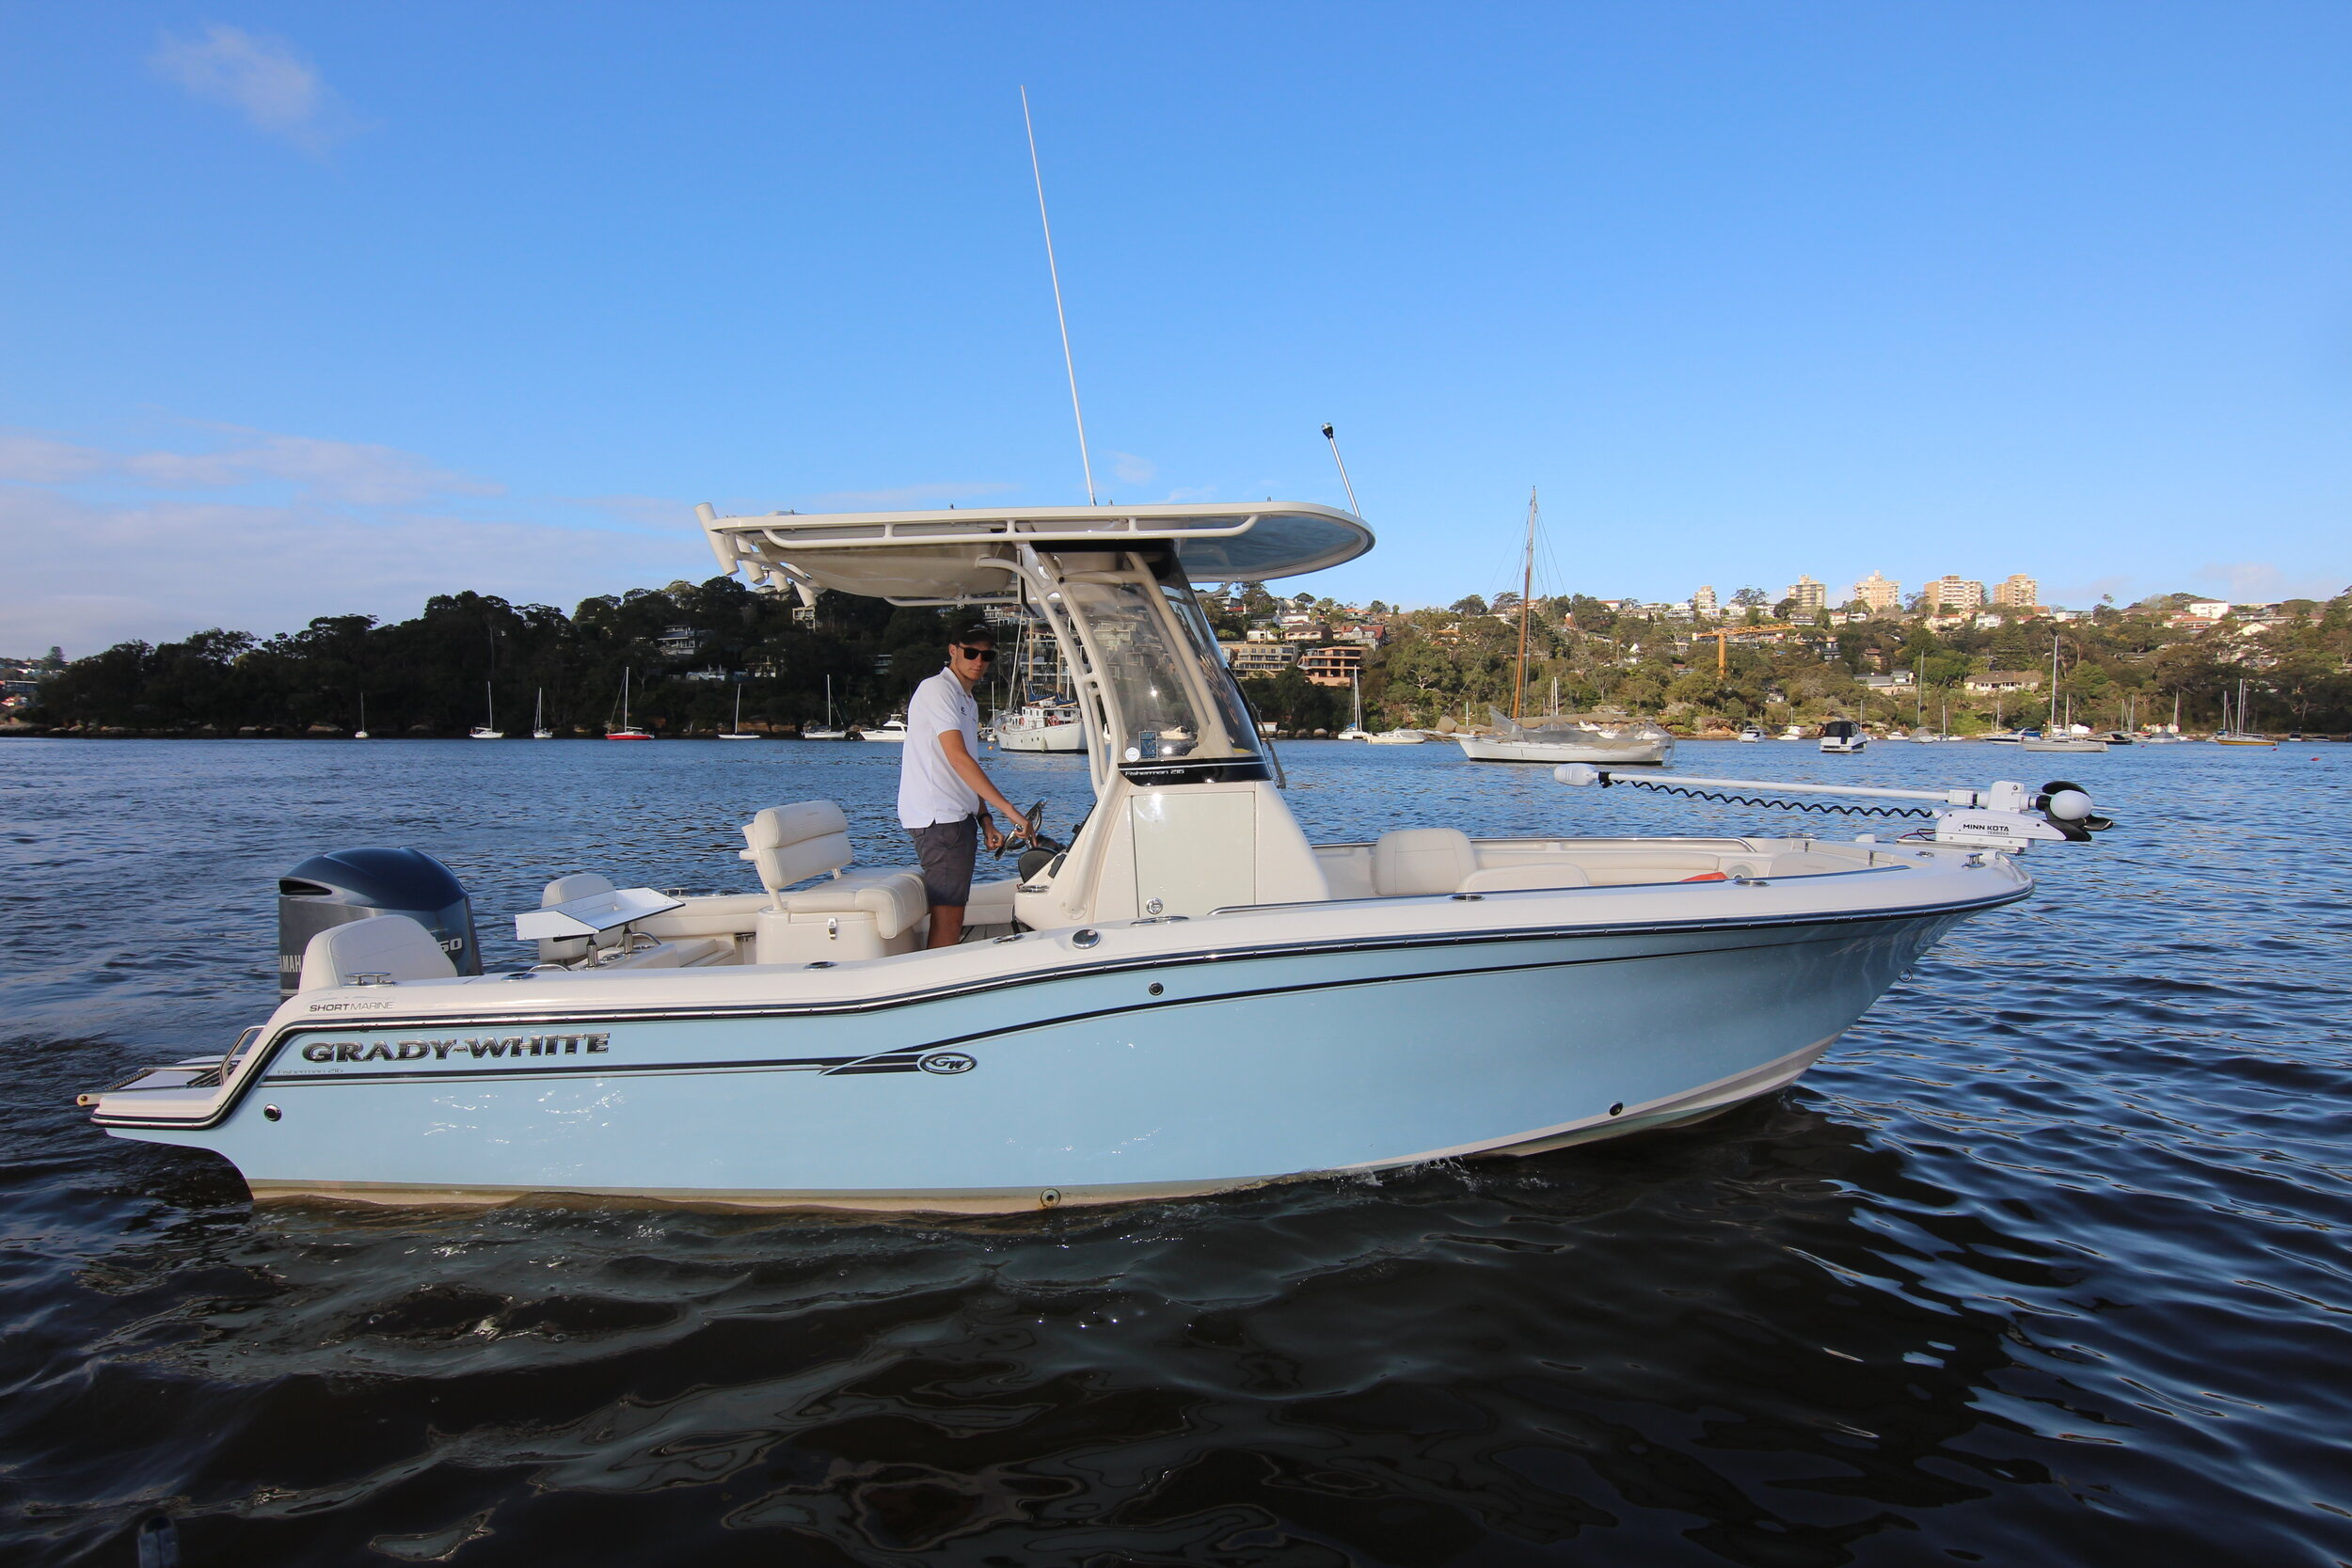 One of the most highly sought after American inshore/ offshore fishing boats ever made!